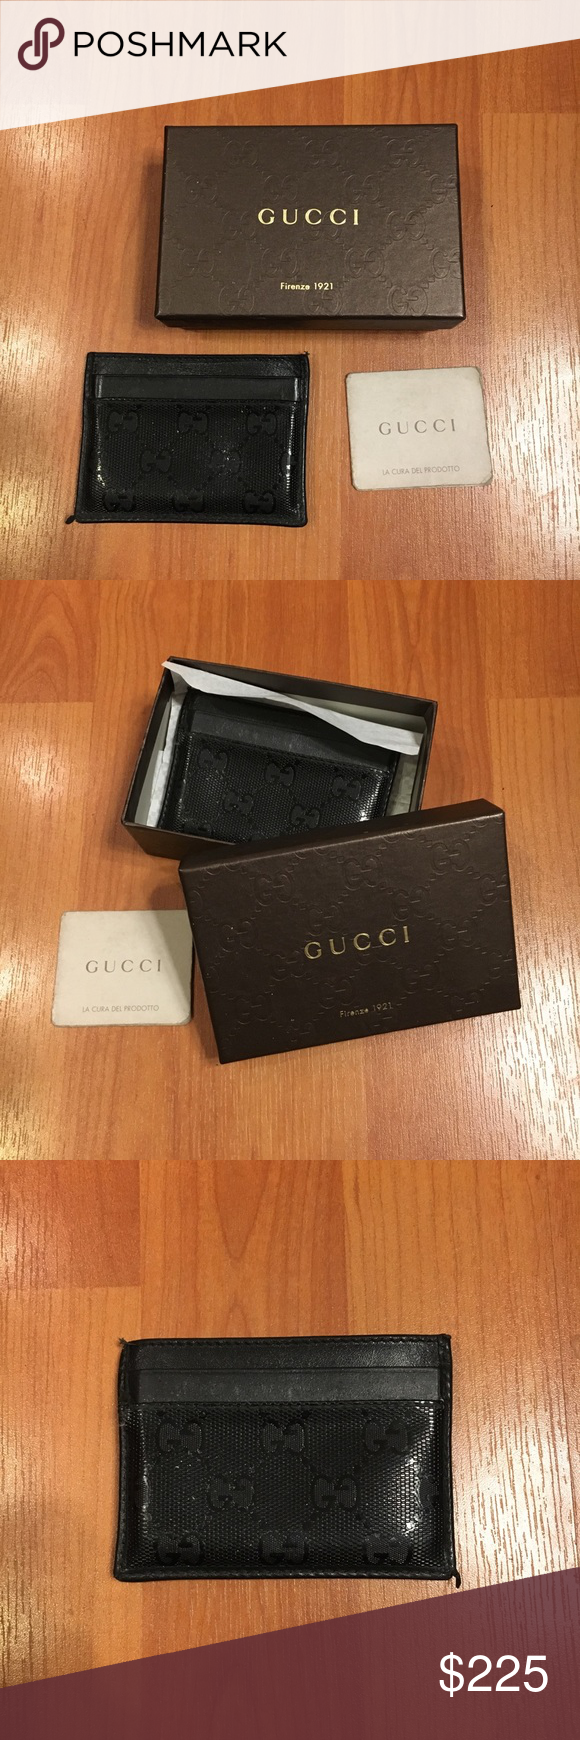 261225435d8 Gucci Card Holder Wallet Gucci card holder wallet. Black patent leather  with Gucci logo stamp